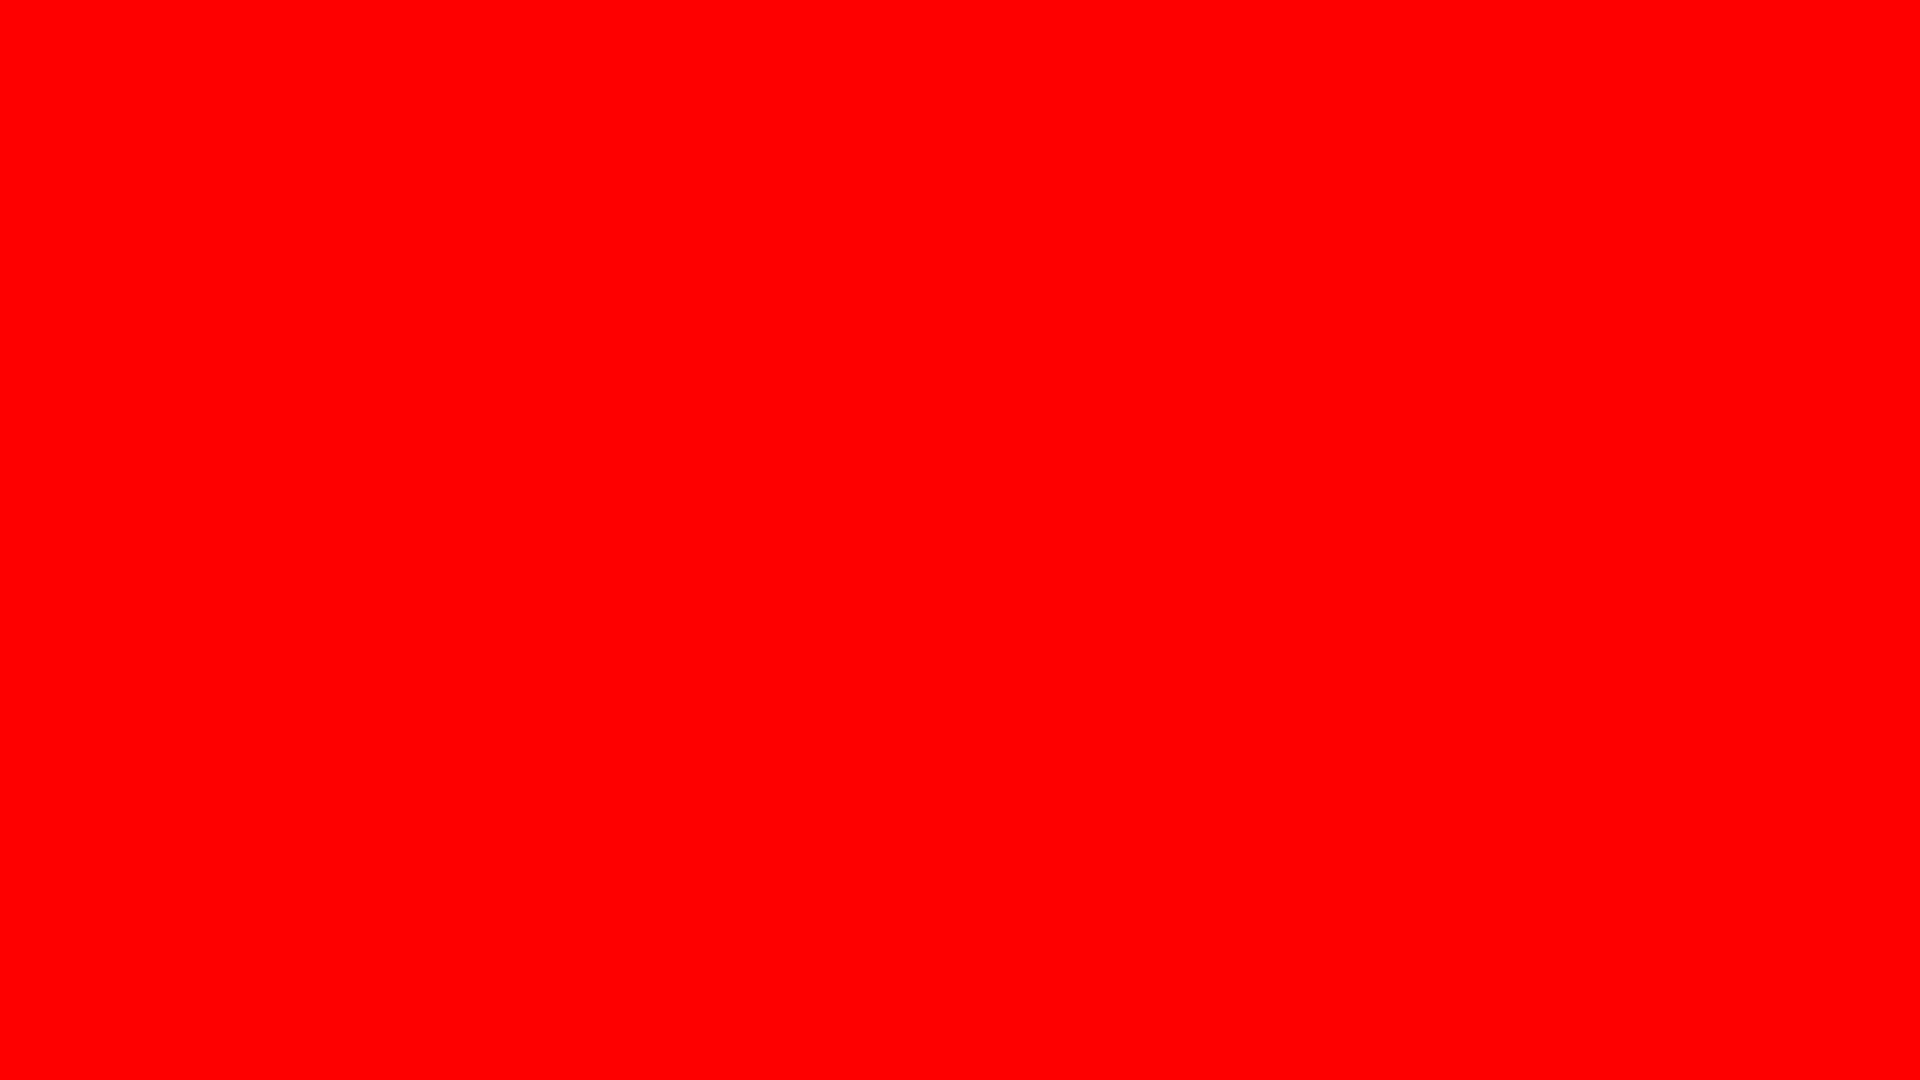 Free resolution Red solid color background, view and .